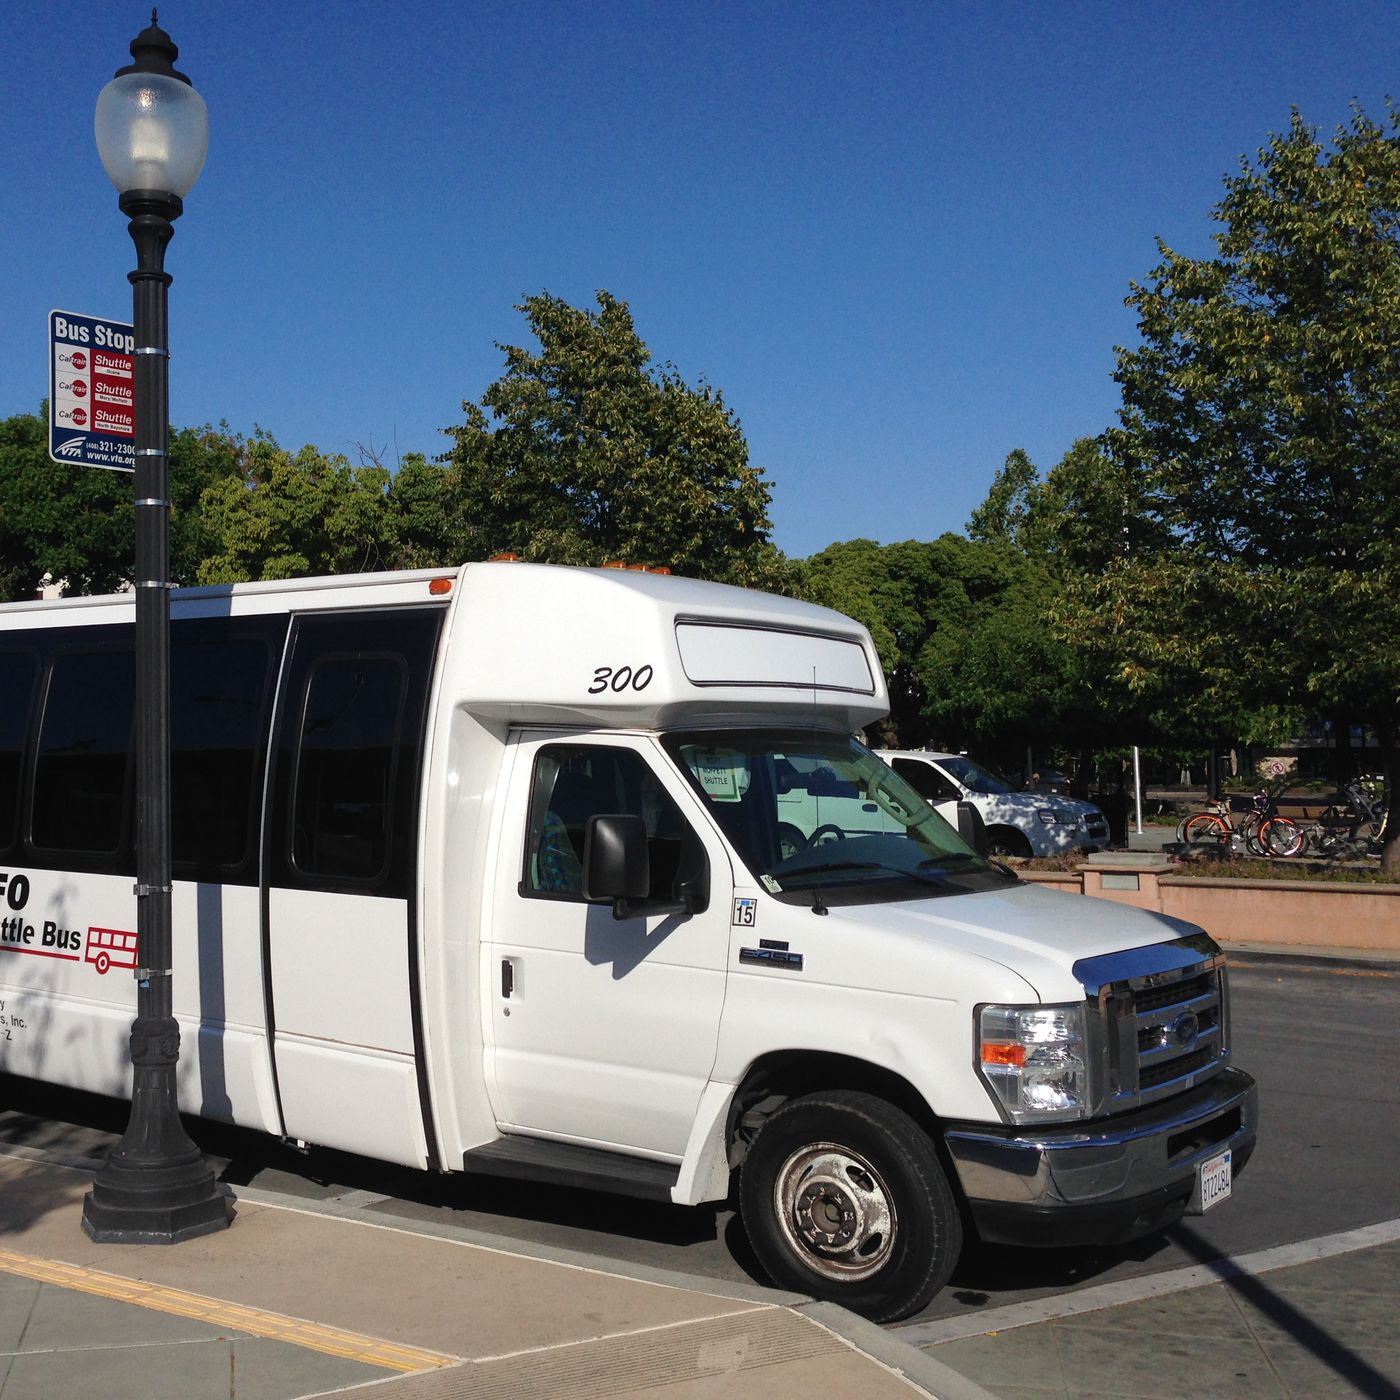 Tech shuttles are SF's biggest rental amenity, says